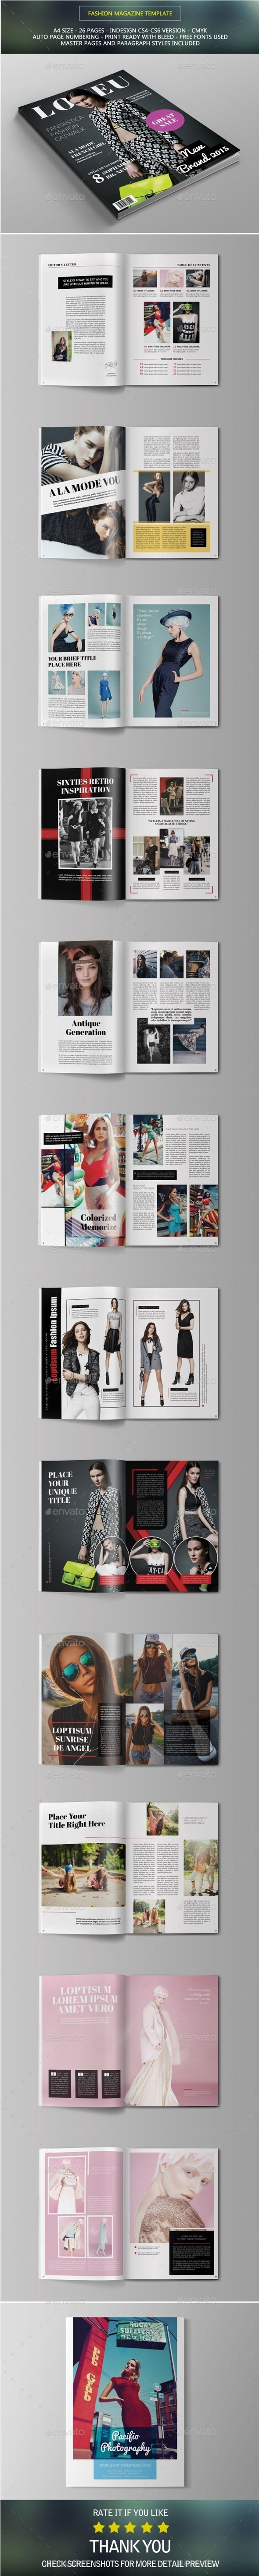 Fashion Magazine Template | #magazinetemplate | Download: http://graphicriver.net/item/fashion-magazine/10426455?ref=ksioks